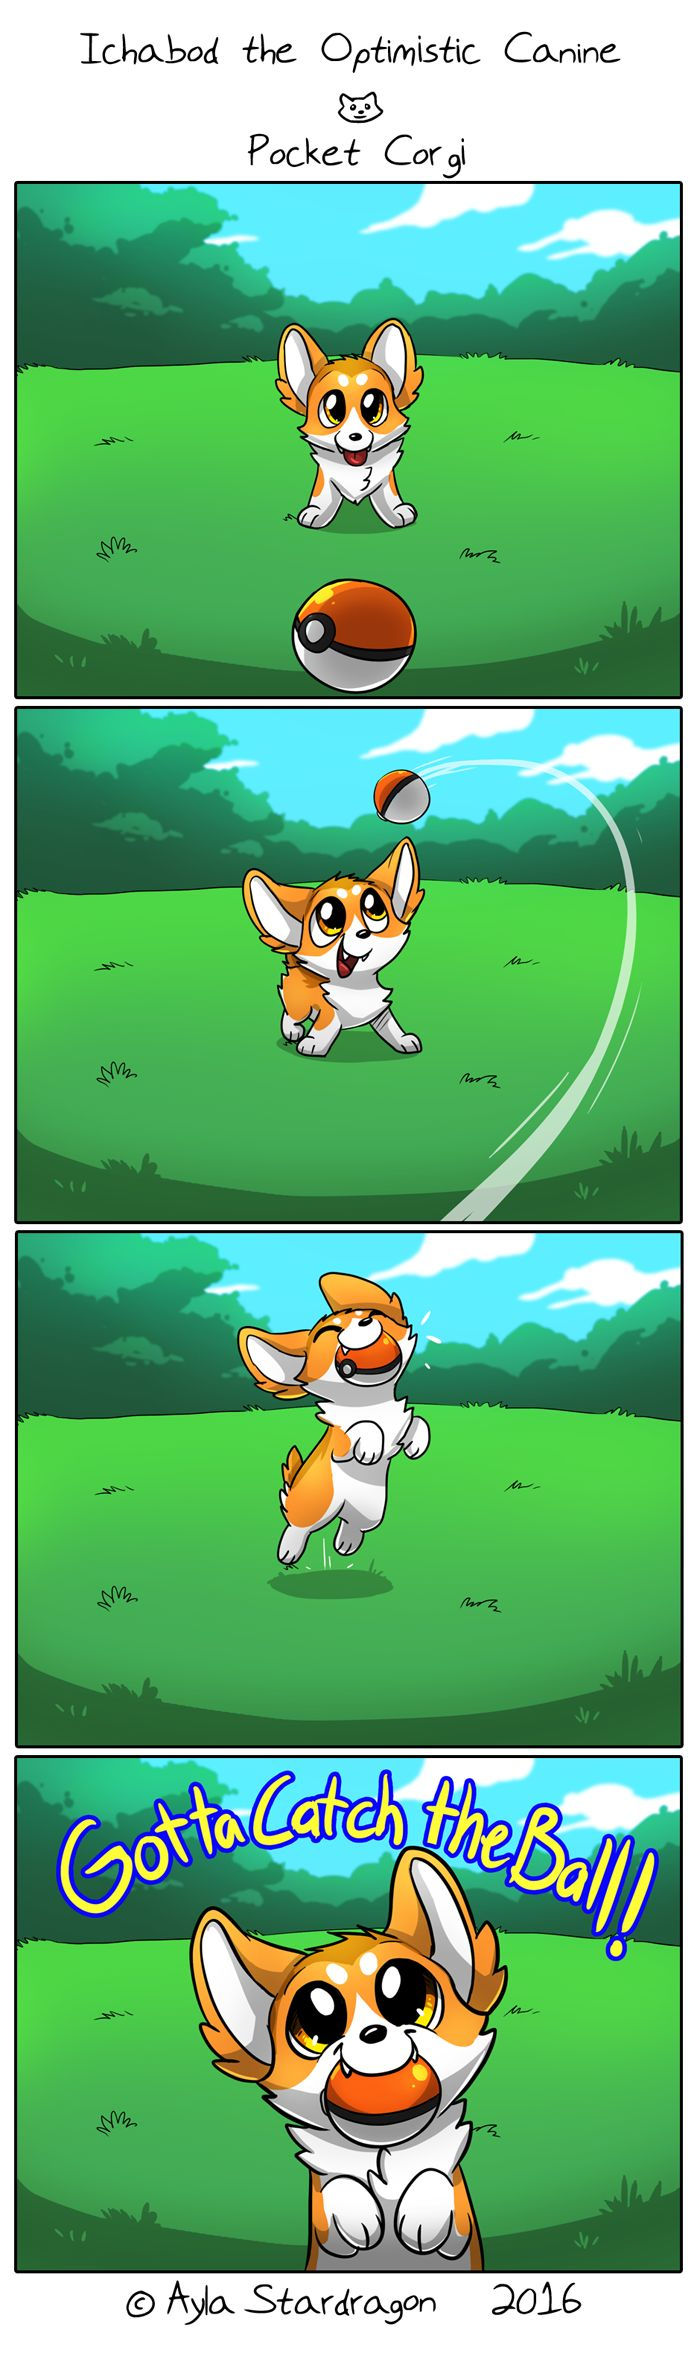 Ichabod the Optimistic Canine :: Pocket Corgi | Tapastic Comics - image 1